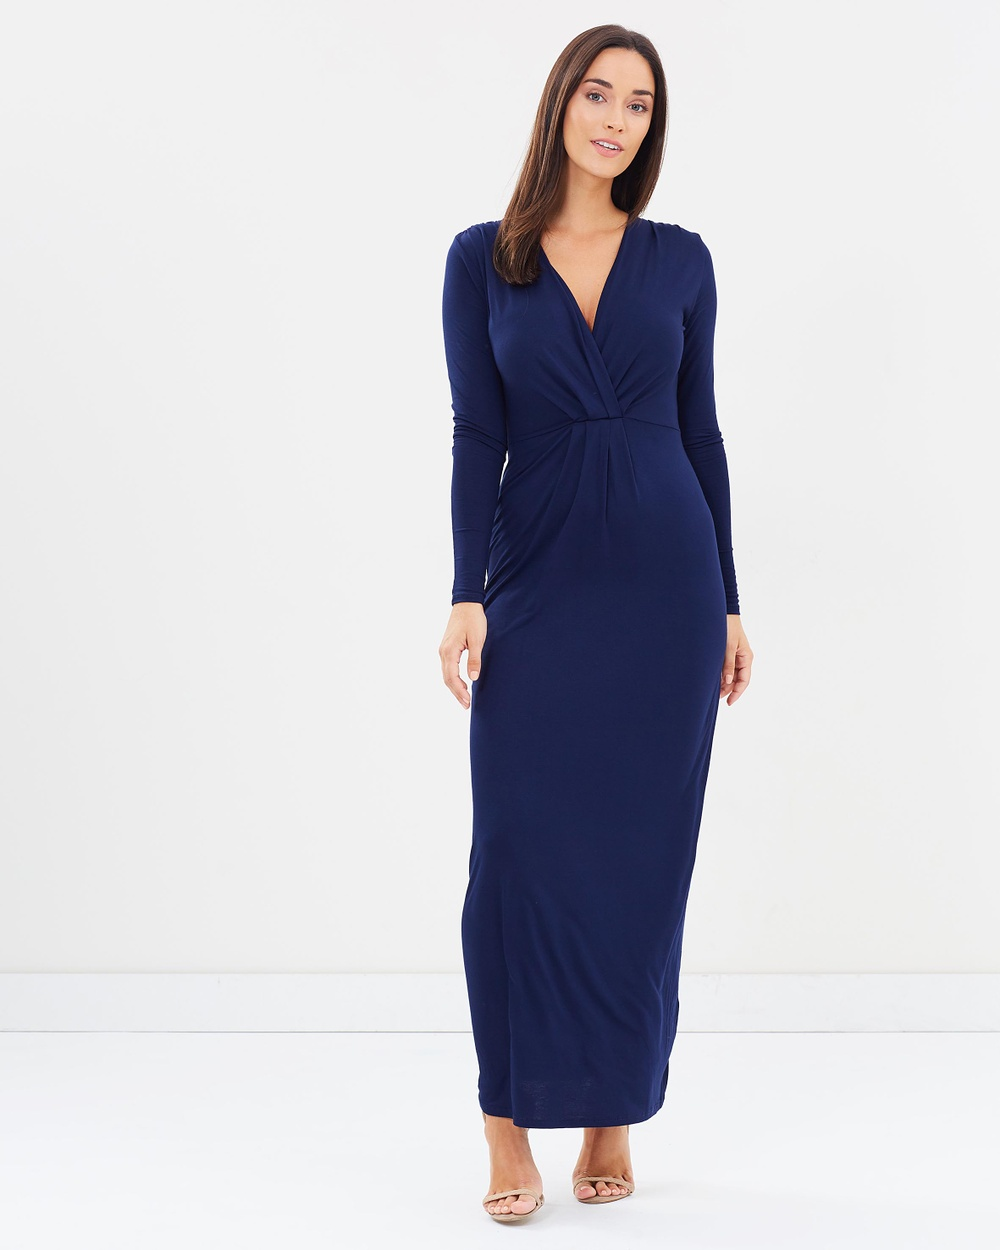 Dorothy Perkins Pleat Maxi Dress Dresses Navy Blue Pleat Maxi Dress